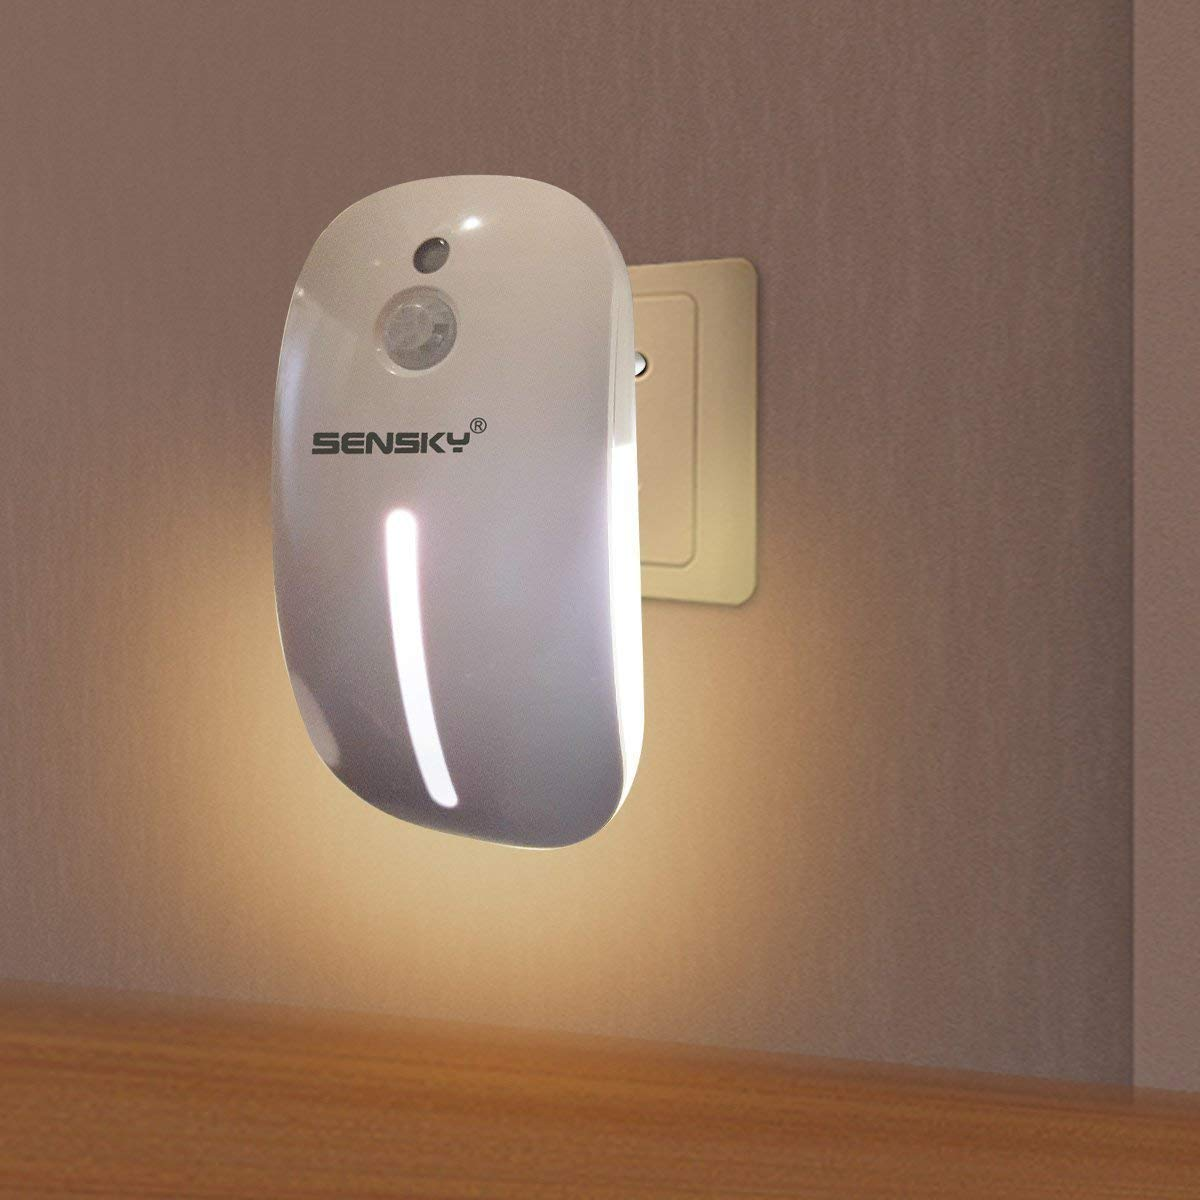 Led Night Light - Sensky BS126 Plug In Night Light, PIR Motion Sensor Light with Motion Detector Dusk to Dawn Light Sensor, 1.8W Output, Non-Glaring Natural White Night Lights for Children' Room [Energy Class A+] Moonlife99 SK-126